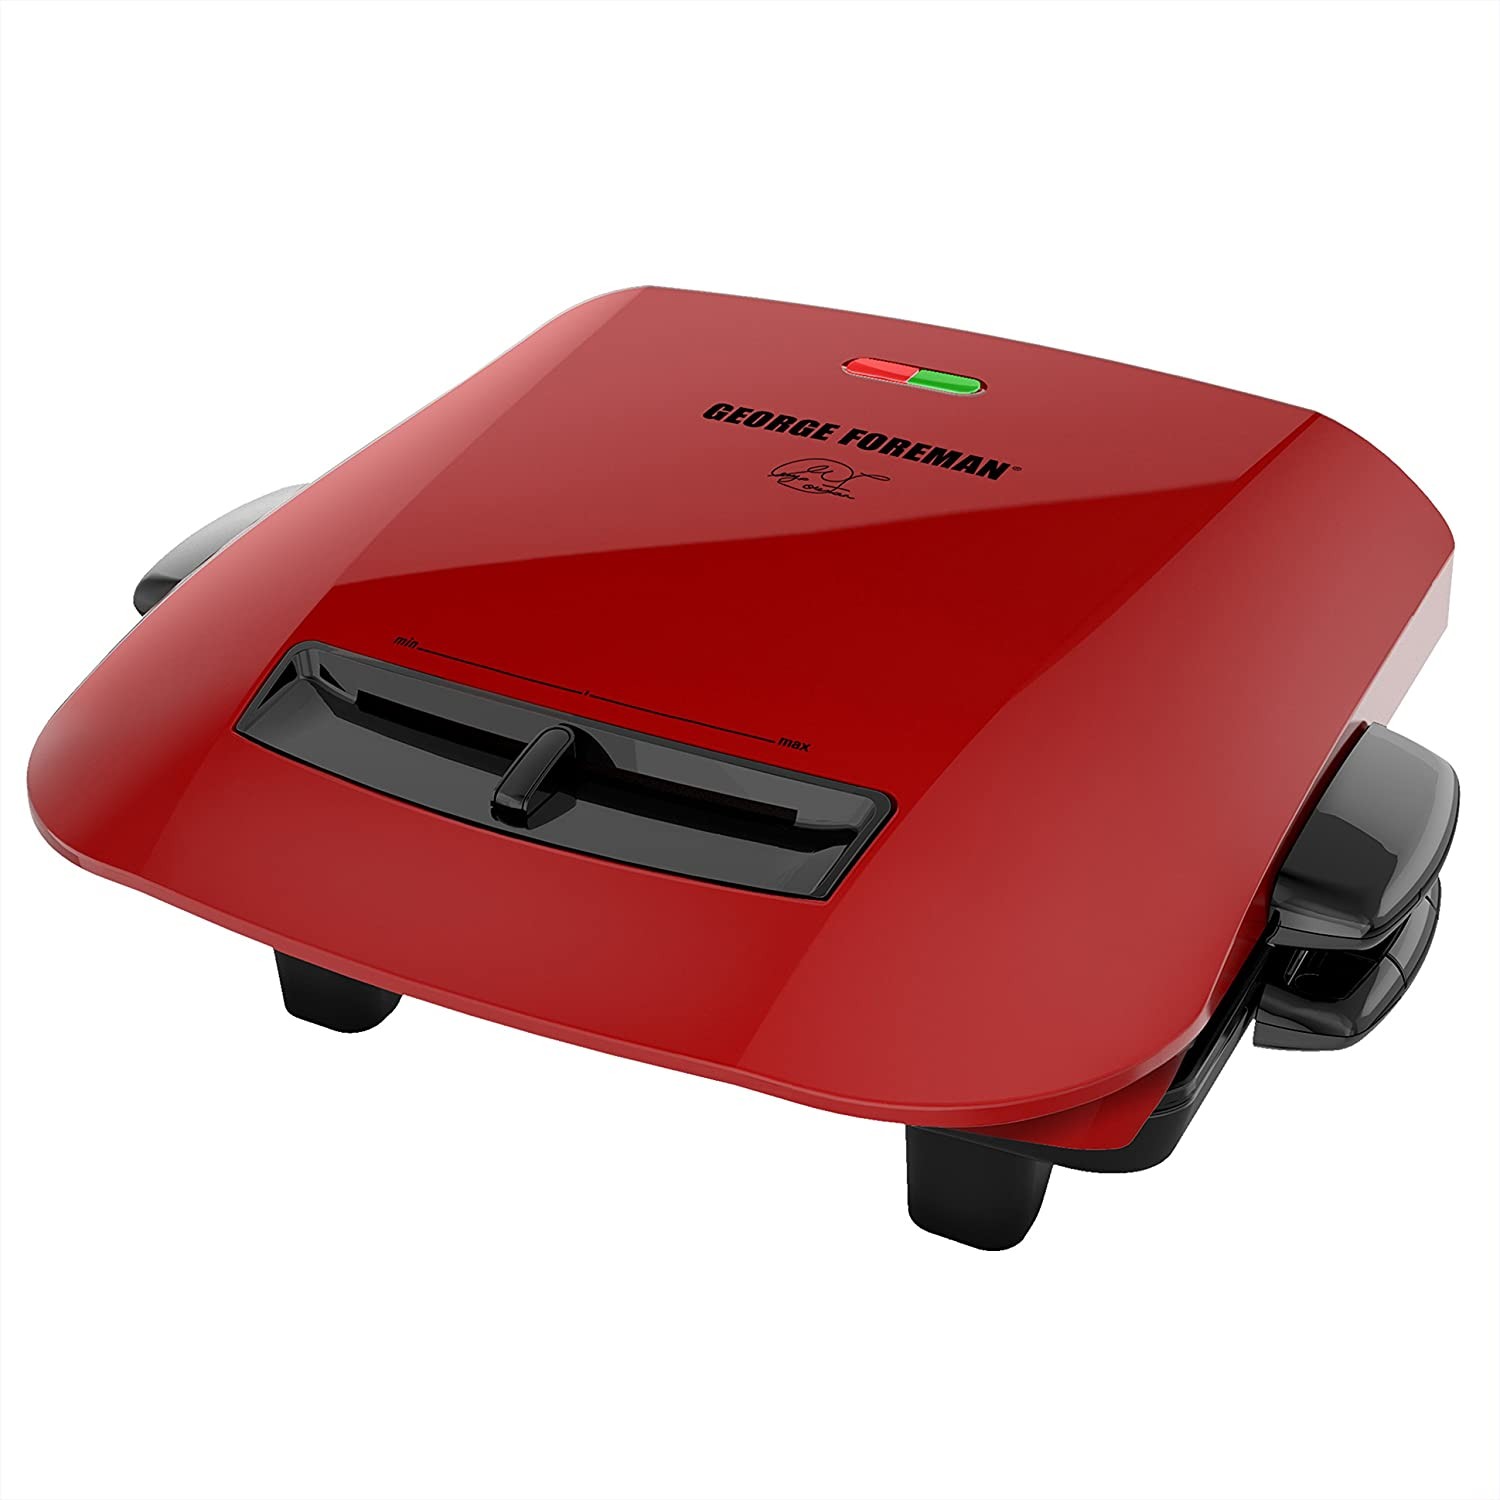 Amazon.com: George Foreman 5-Serving Removable Plate Grill and Panini  Press, Red, GRP2841R: Electric Contact Grills: Kitchen & Dining